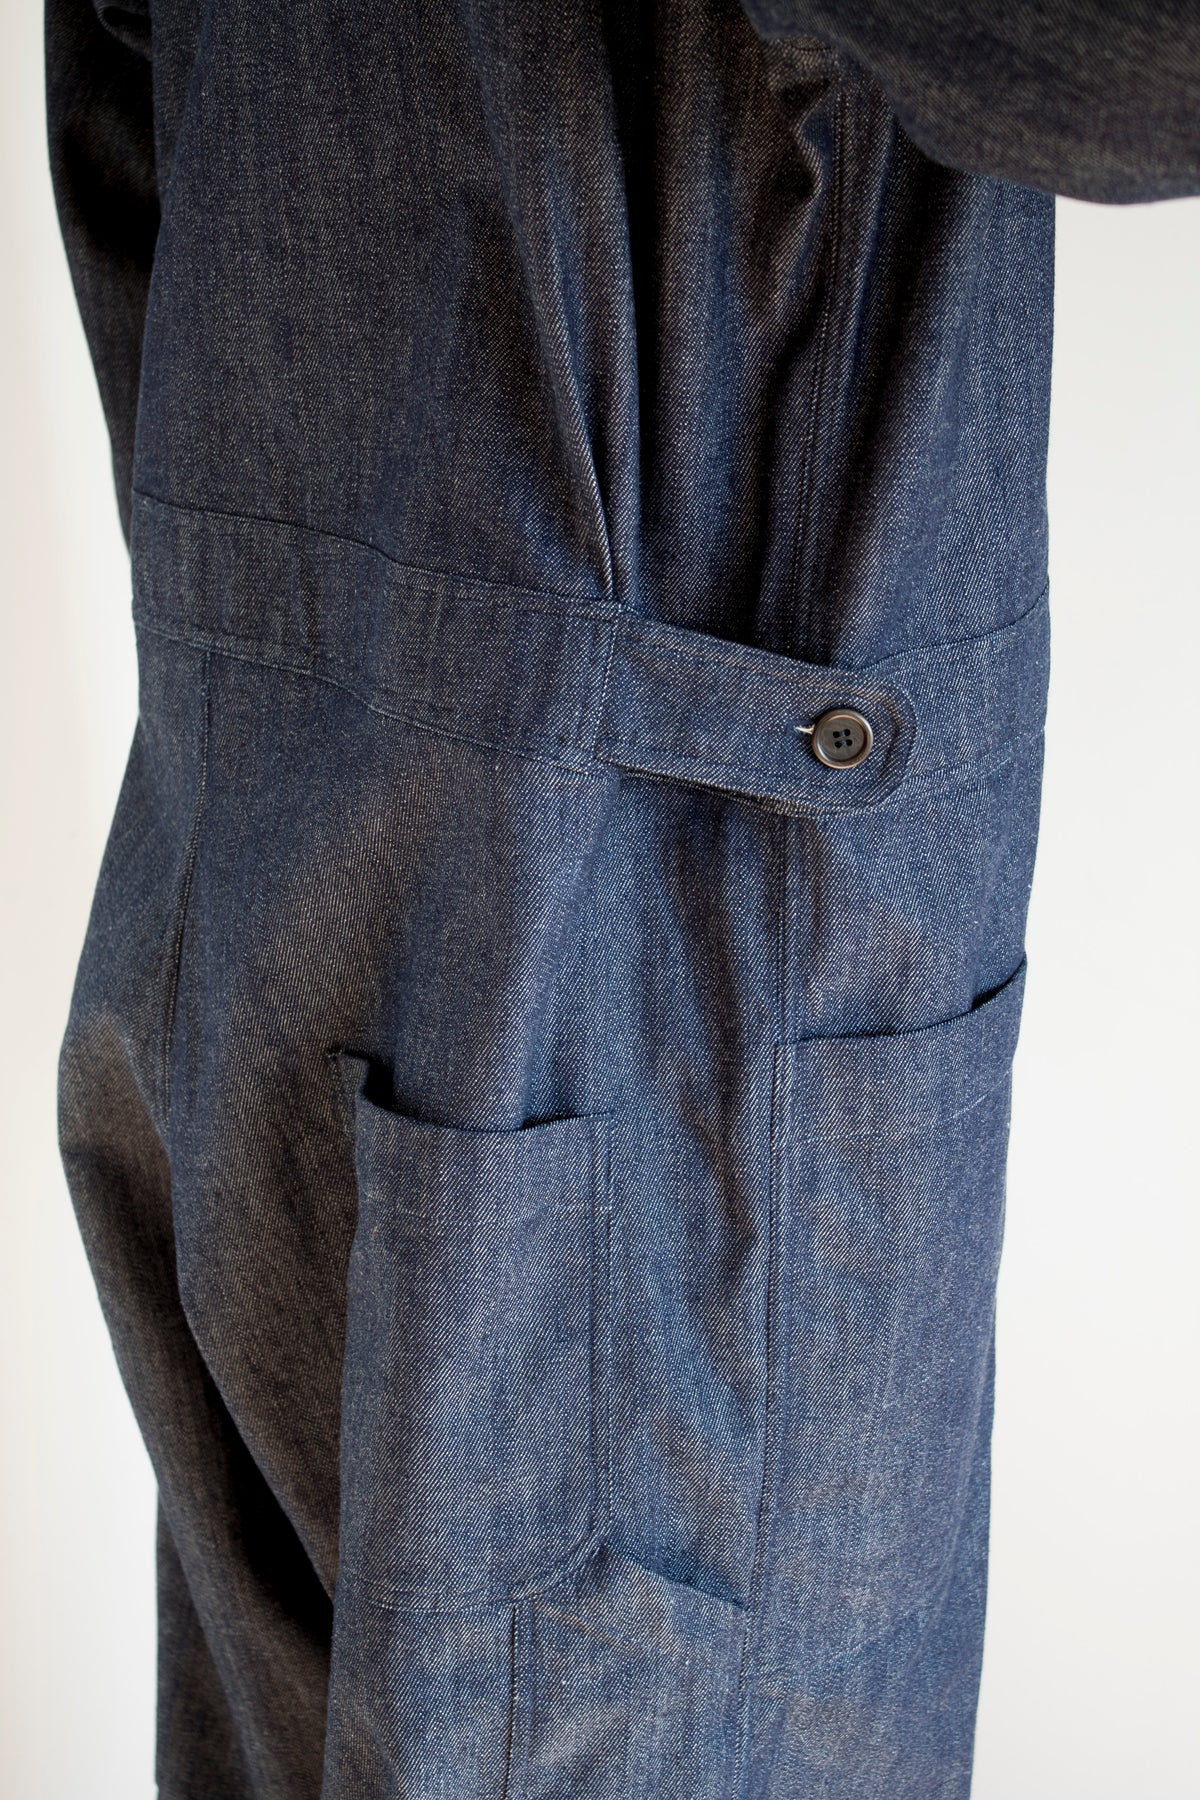 side view of pajotten sustainable menswear denim overalls